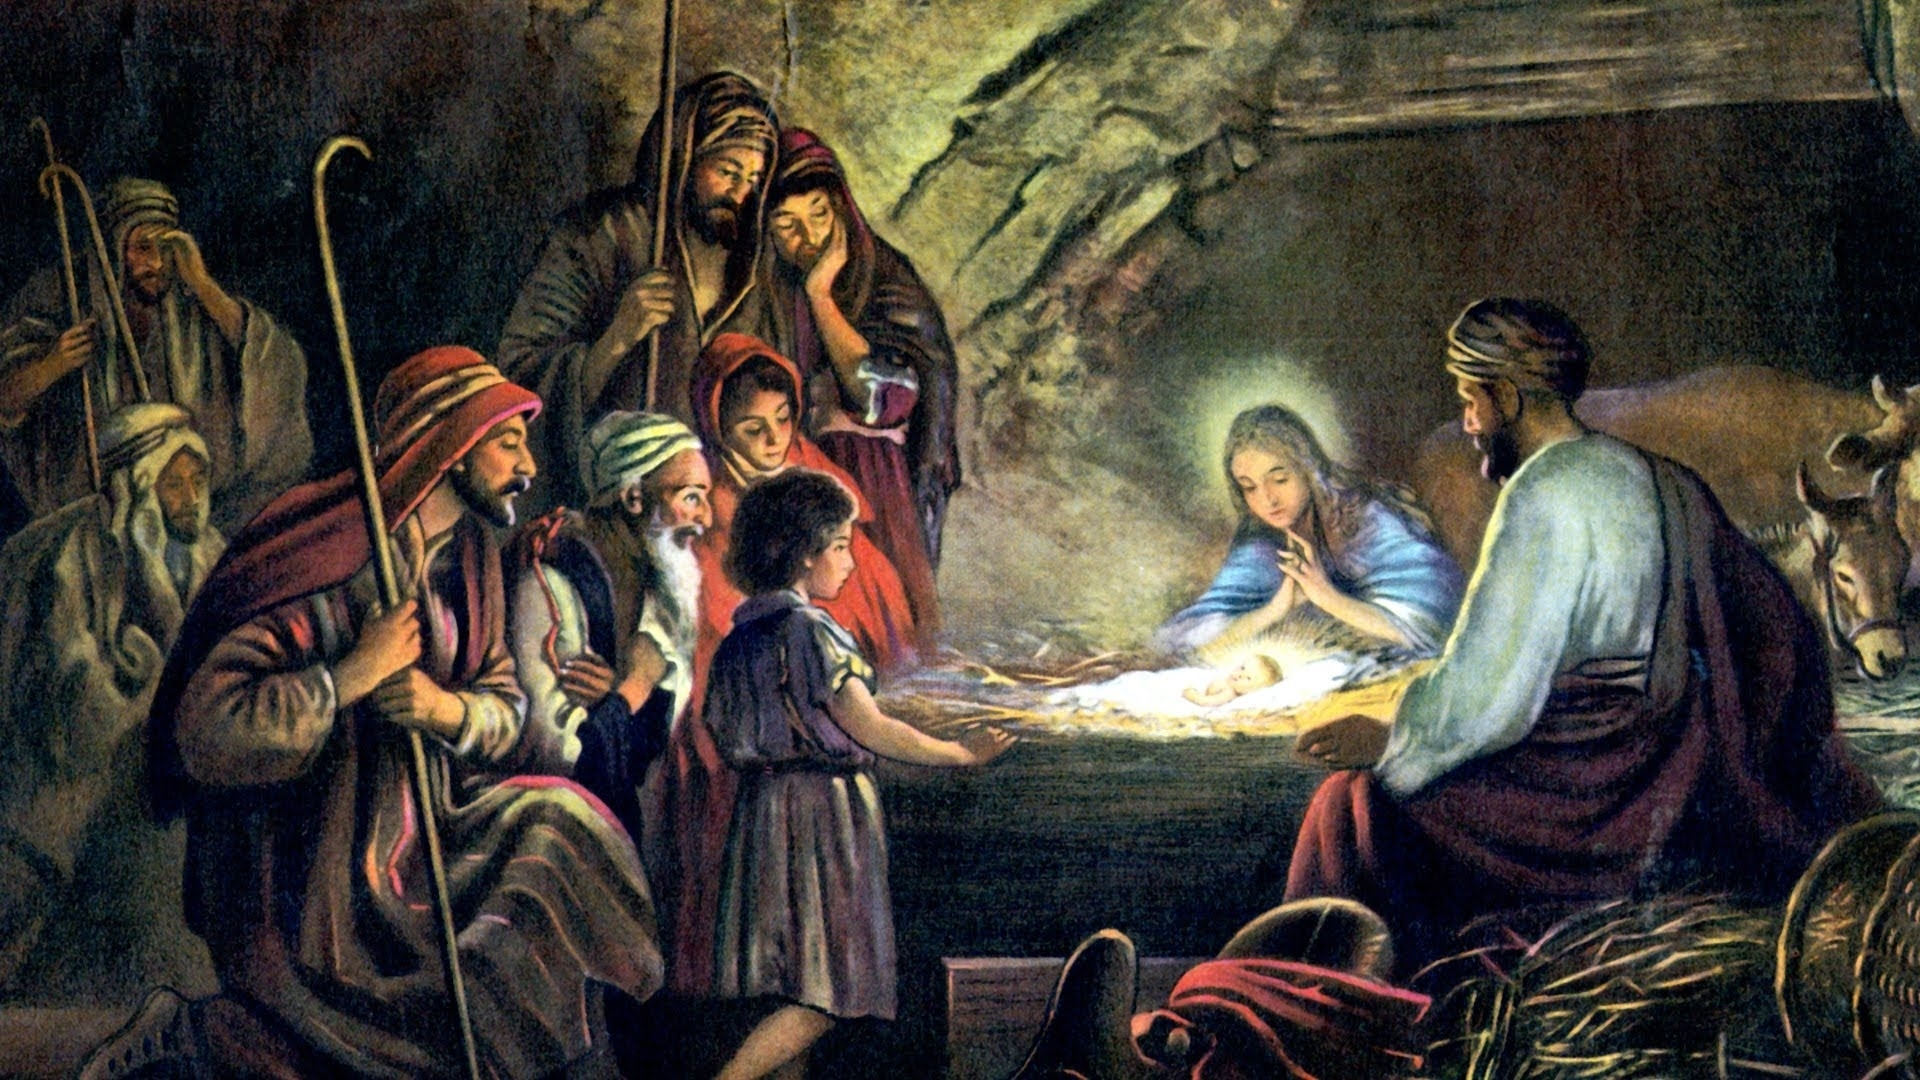 the birth of jesus christ - youtube